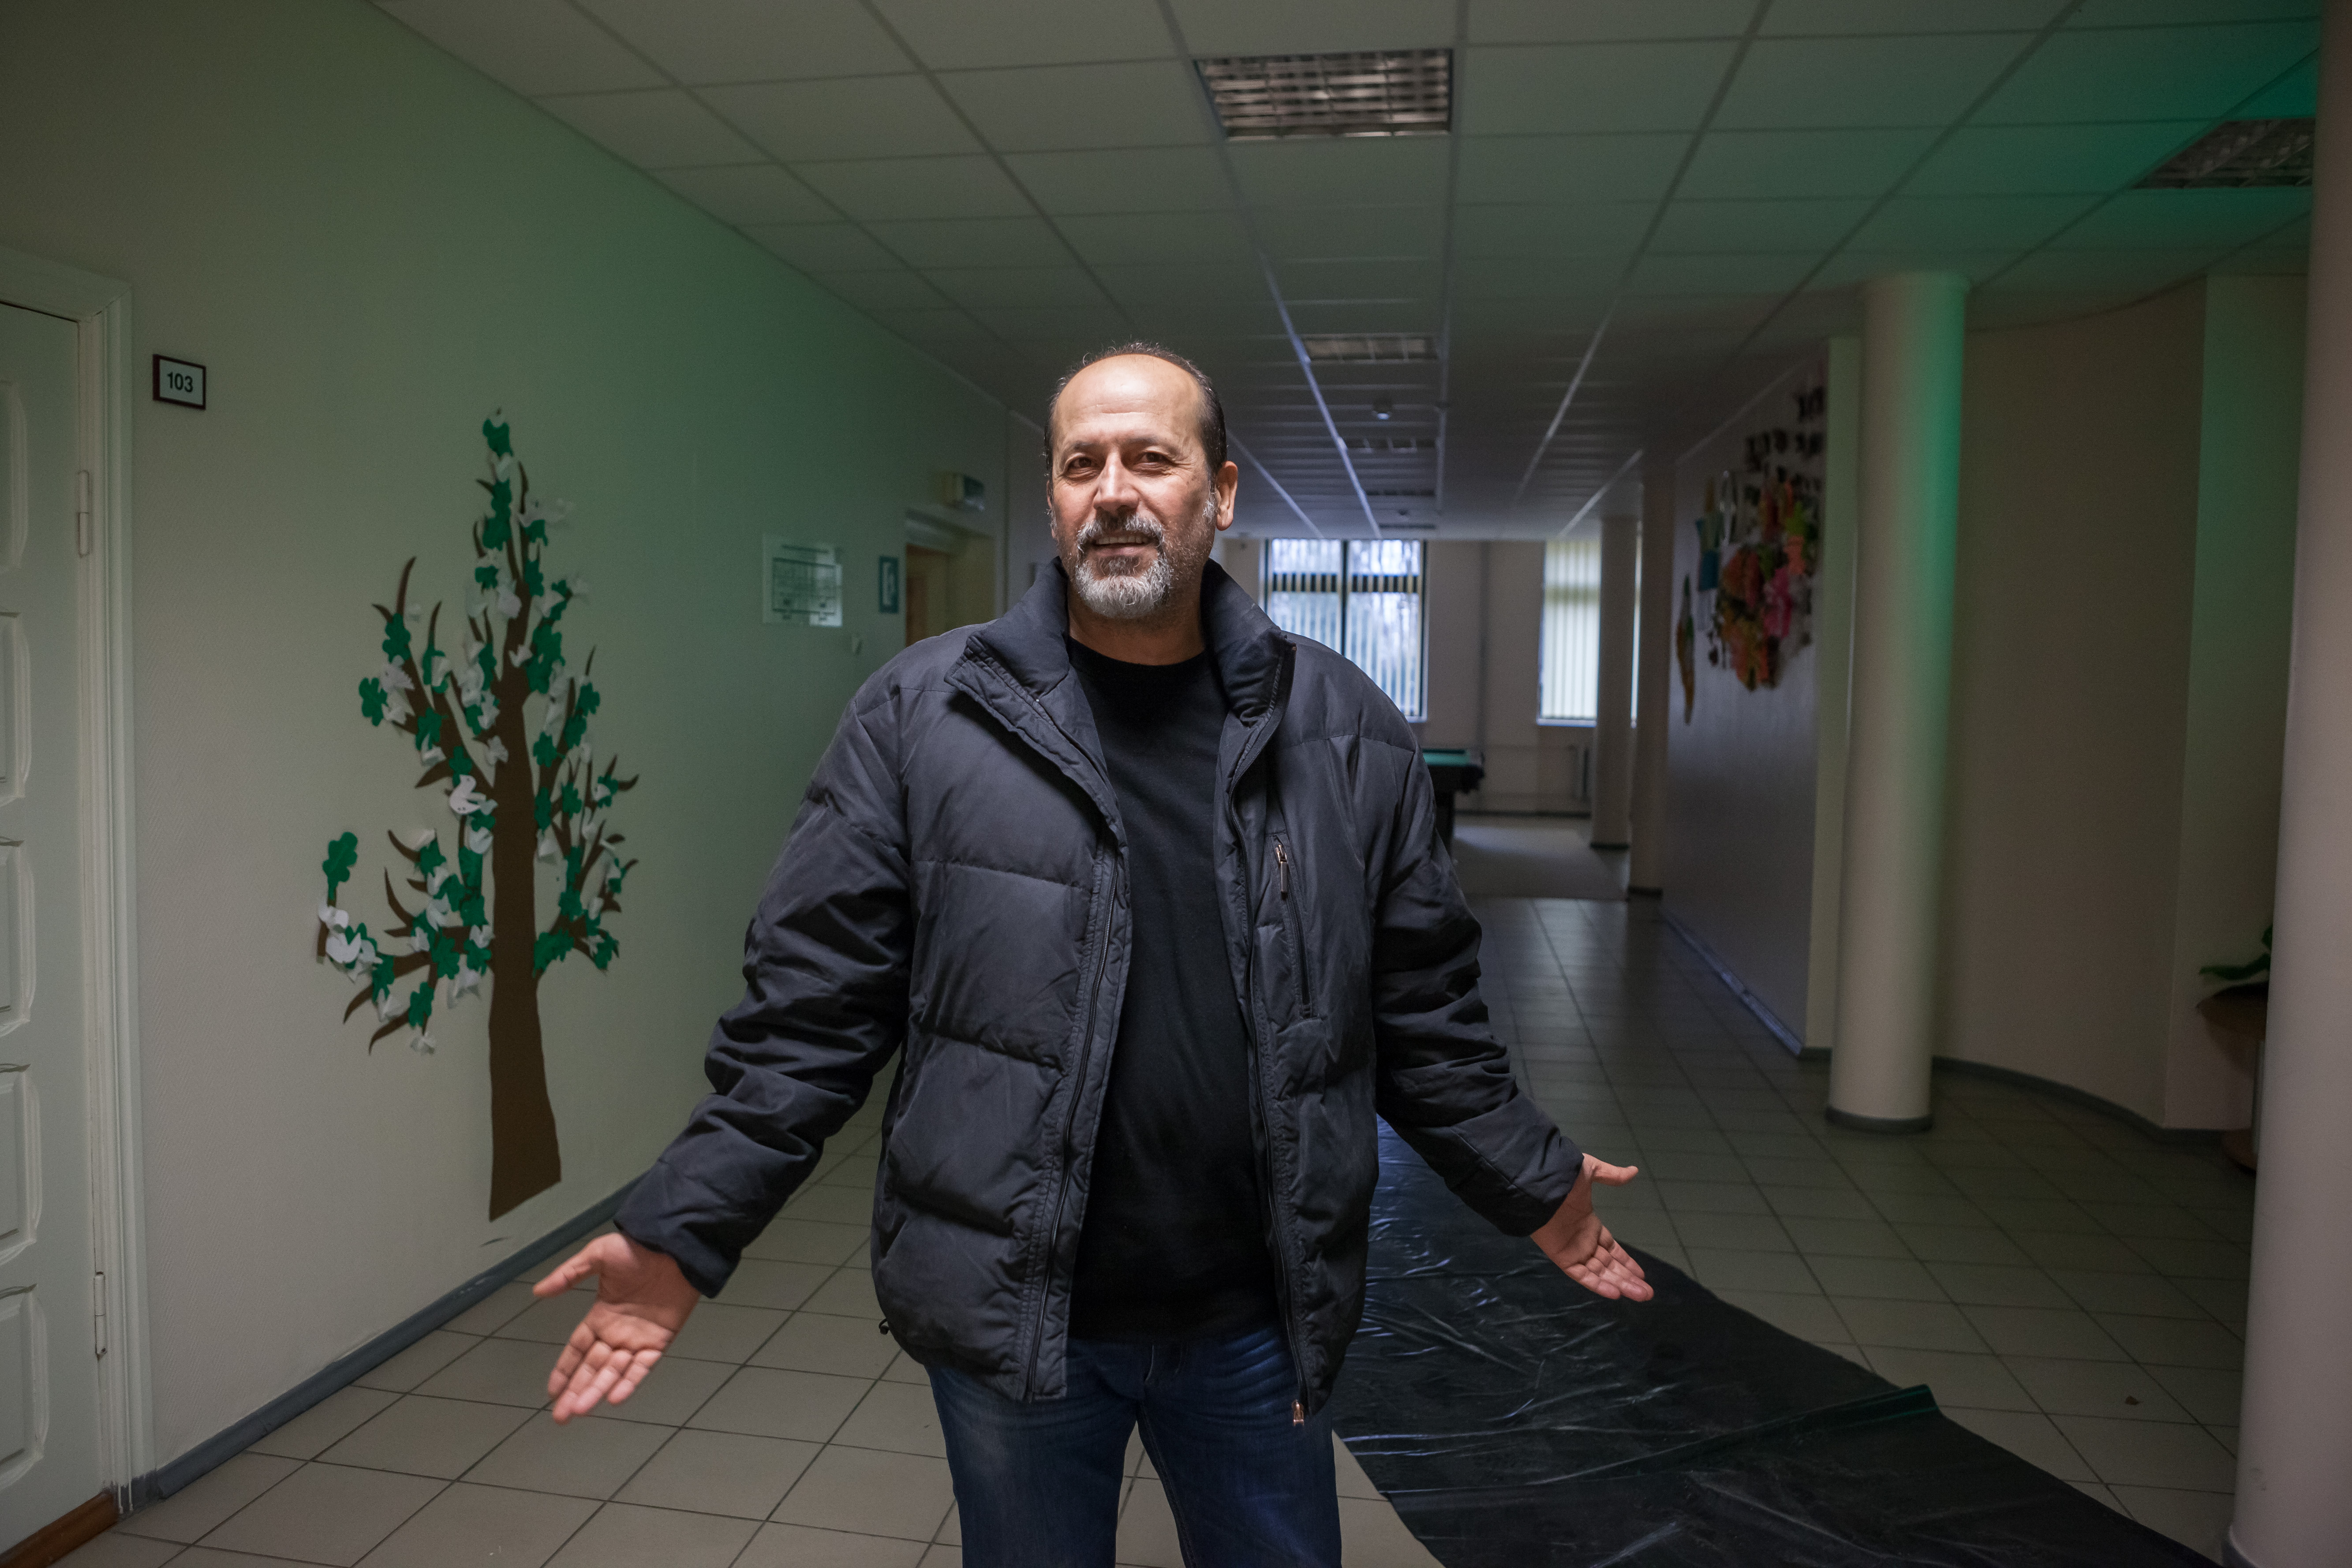 Currently about 100 Syrian refugees are provided with accommodation in the Center. This Syrian refugee arrived to Lithuania with his wife and two kids. They live in Rukla's Center for about three months.